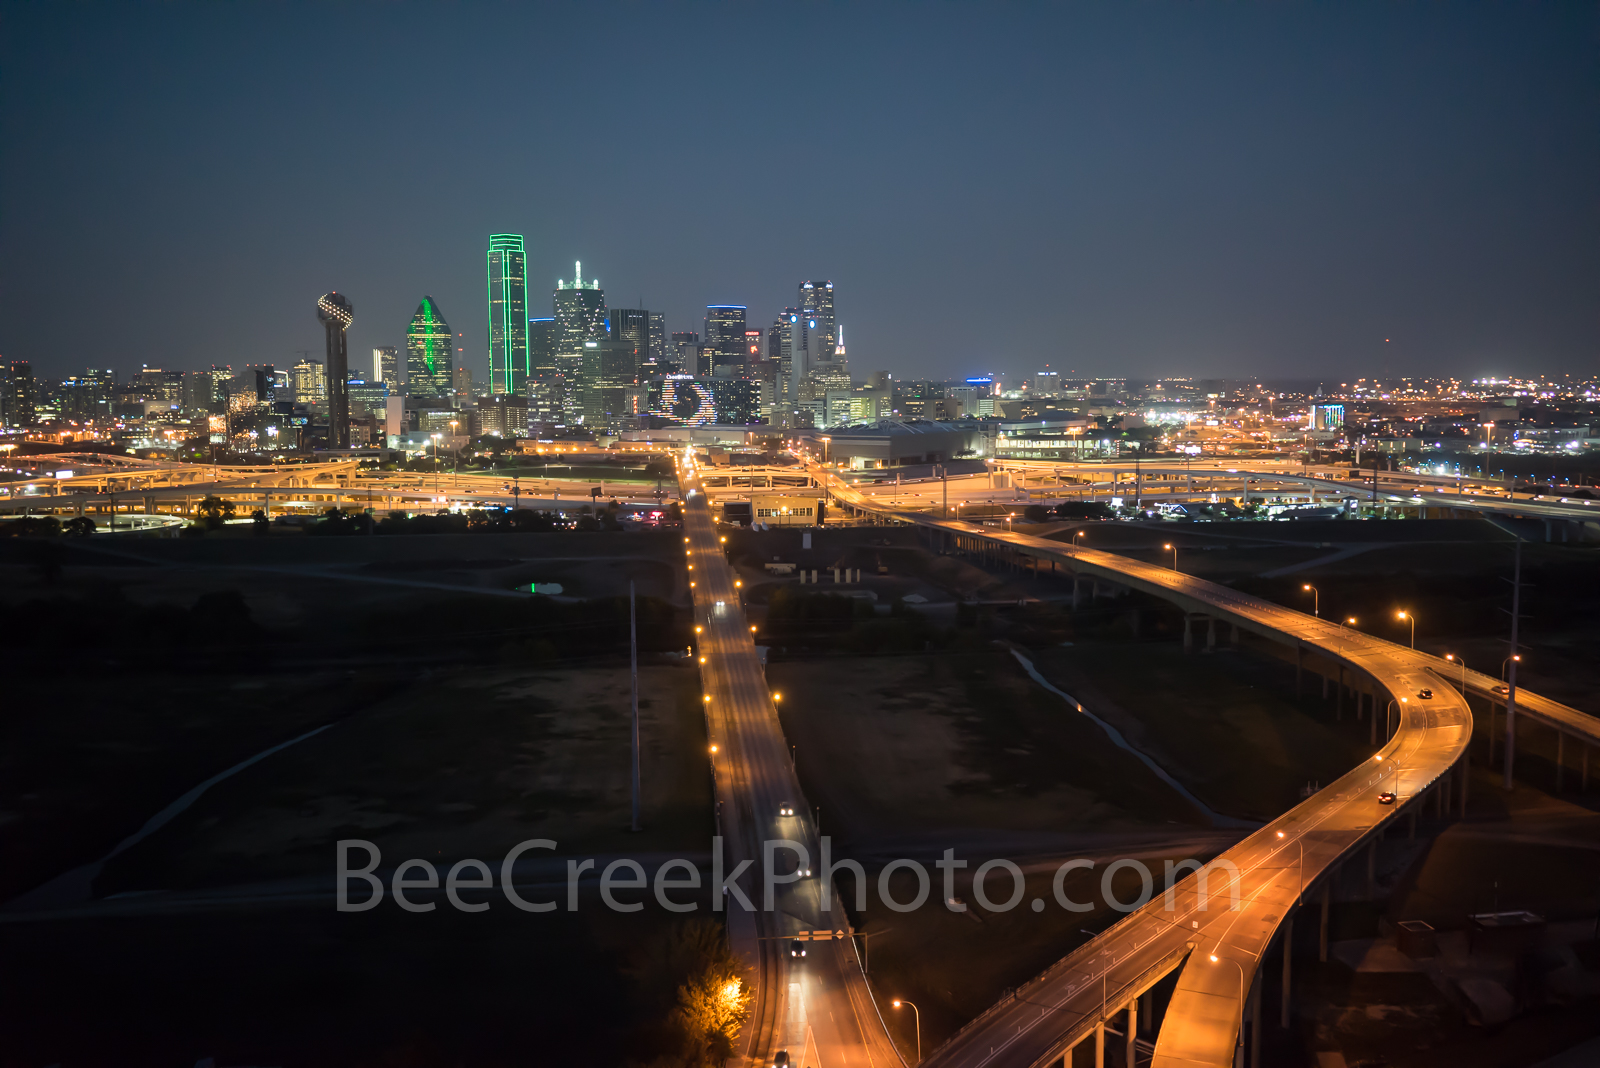 Dallas skyline, dark, aerial, city, roads, downtown, Trinity river, skyscrapers, Bank of America, landmark, Reunion tower, Comerica Bank bldg, Fountain Plaza, Omni Hotel, high rise, buildings, photo